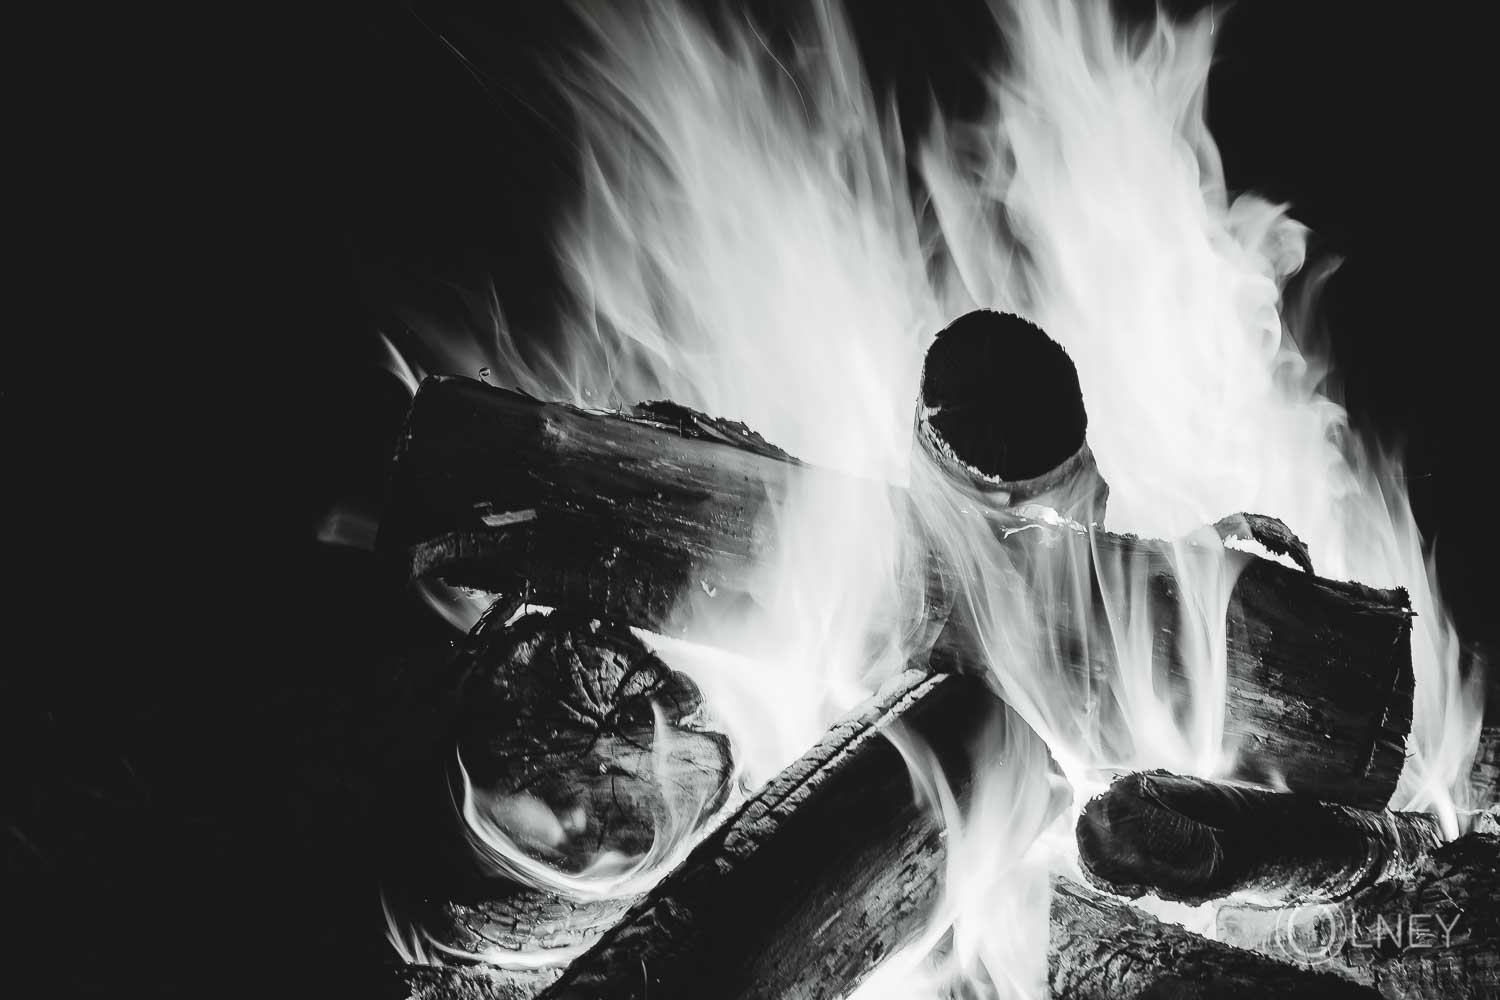 campfire in black and white